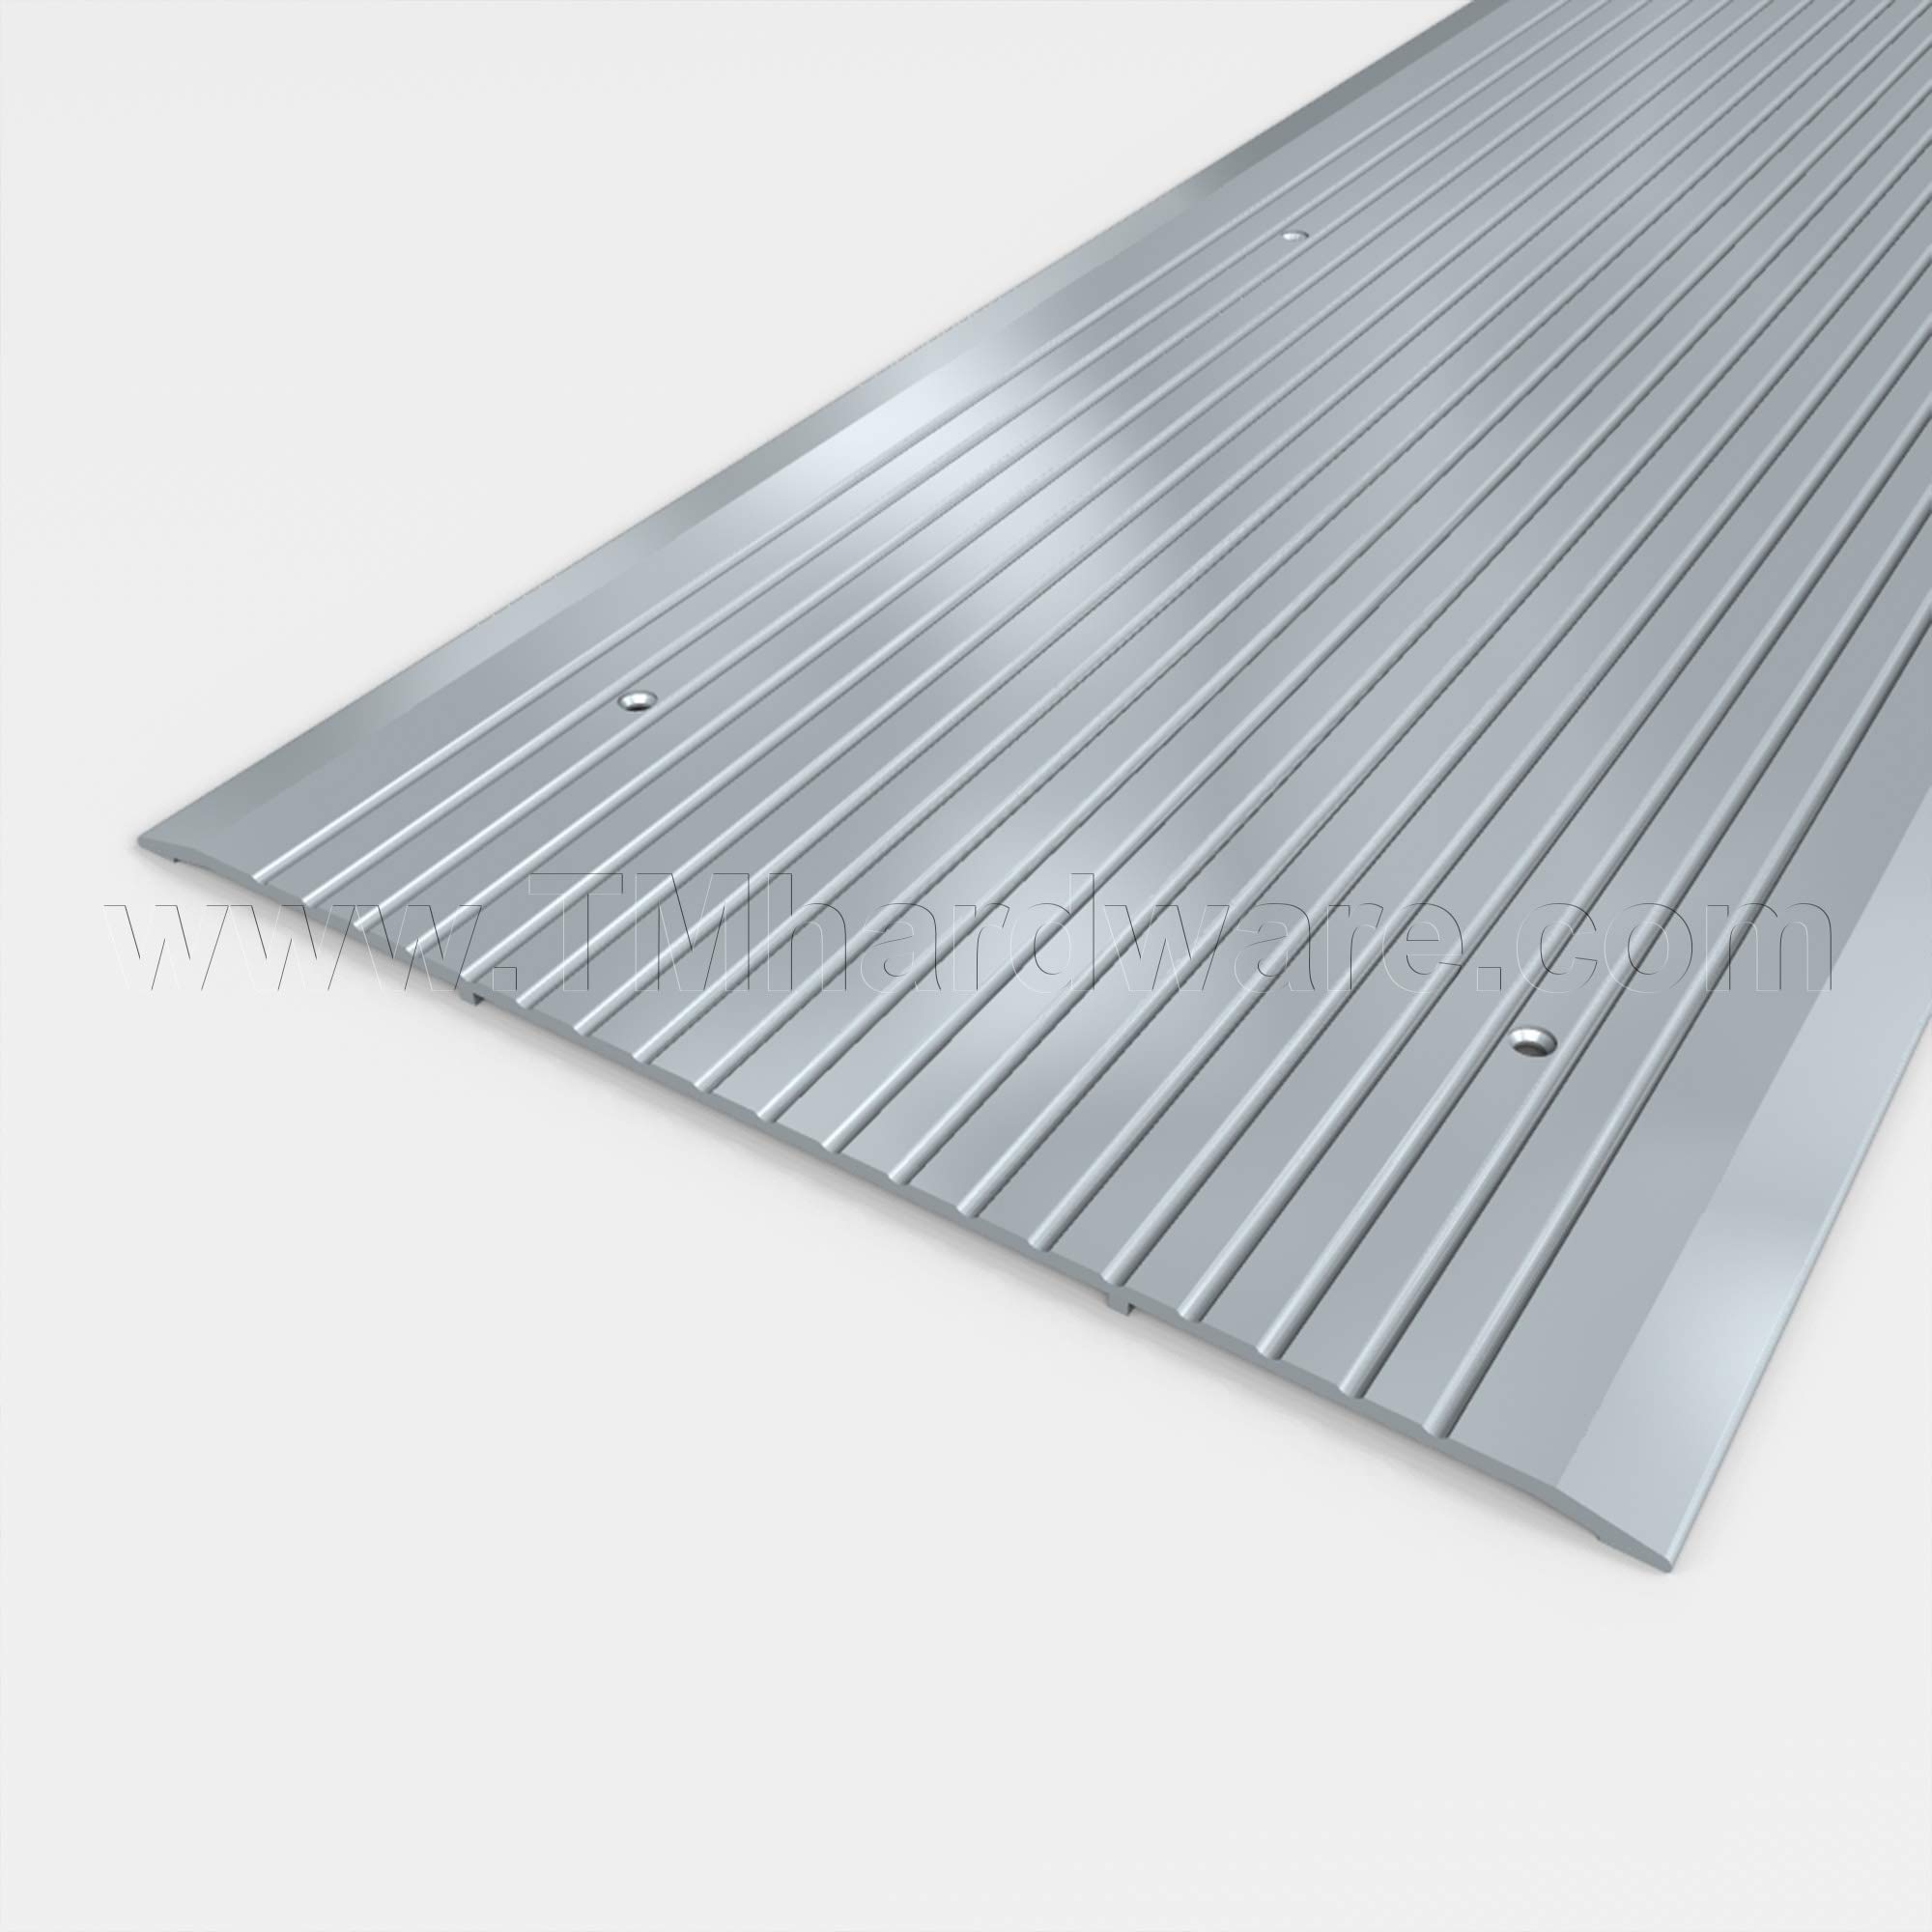 12'' Wide Aluminum Threshold (48'', Silver) - Single Piece Extrusion! by Trademark Hardware